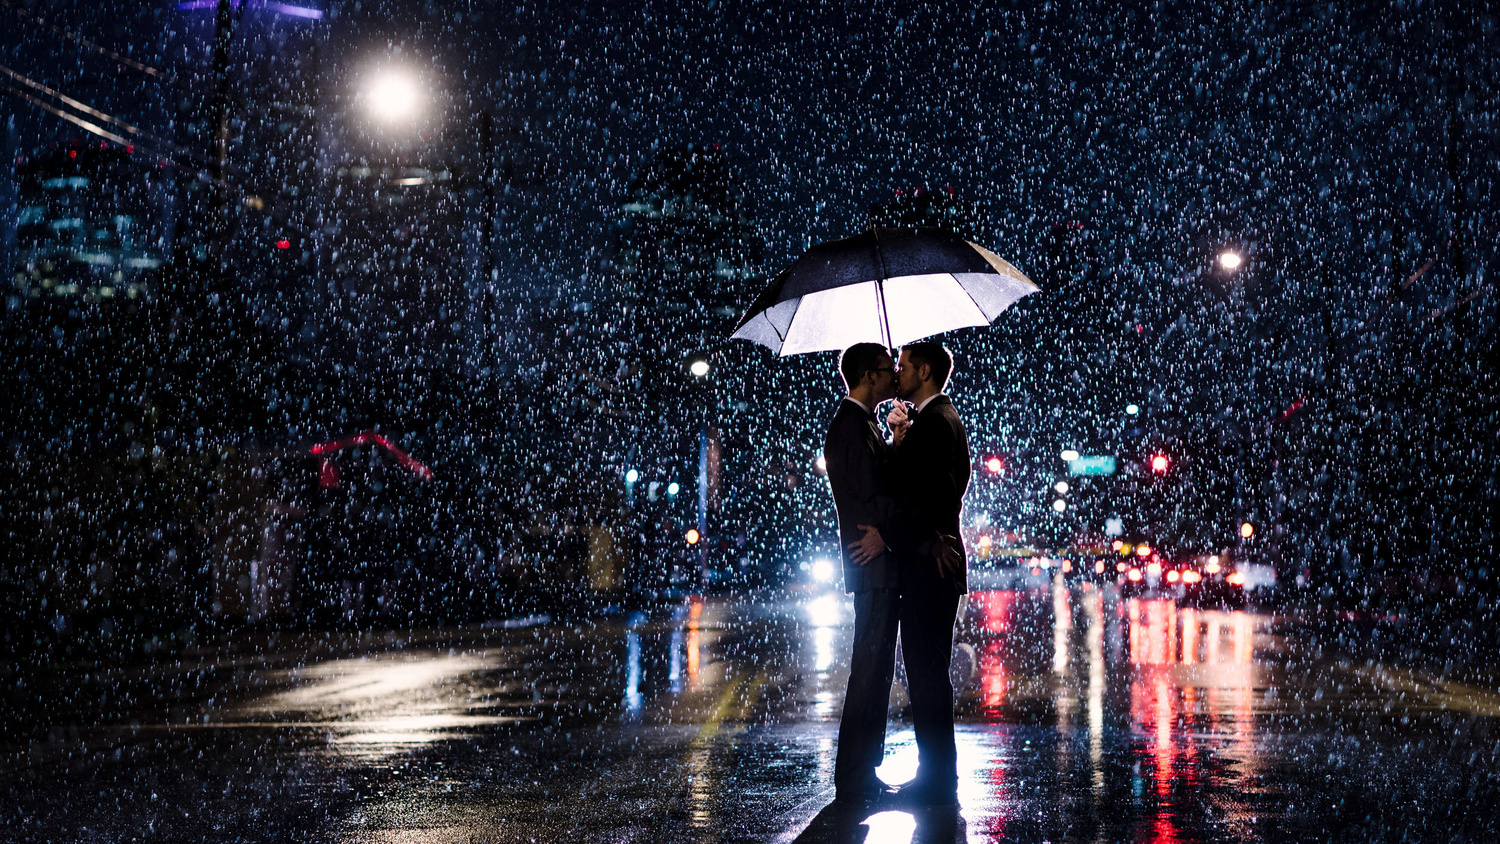 Gay couple kissing in the rain while backlit